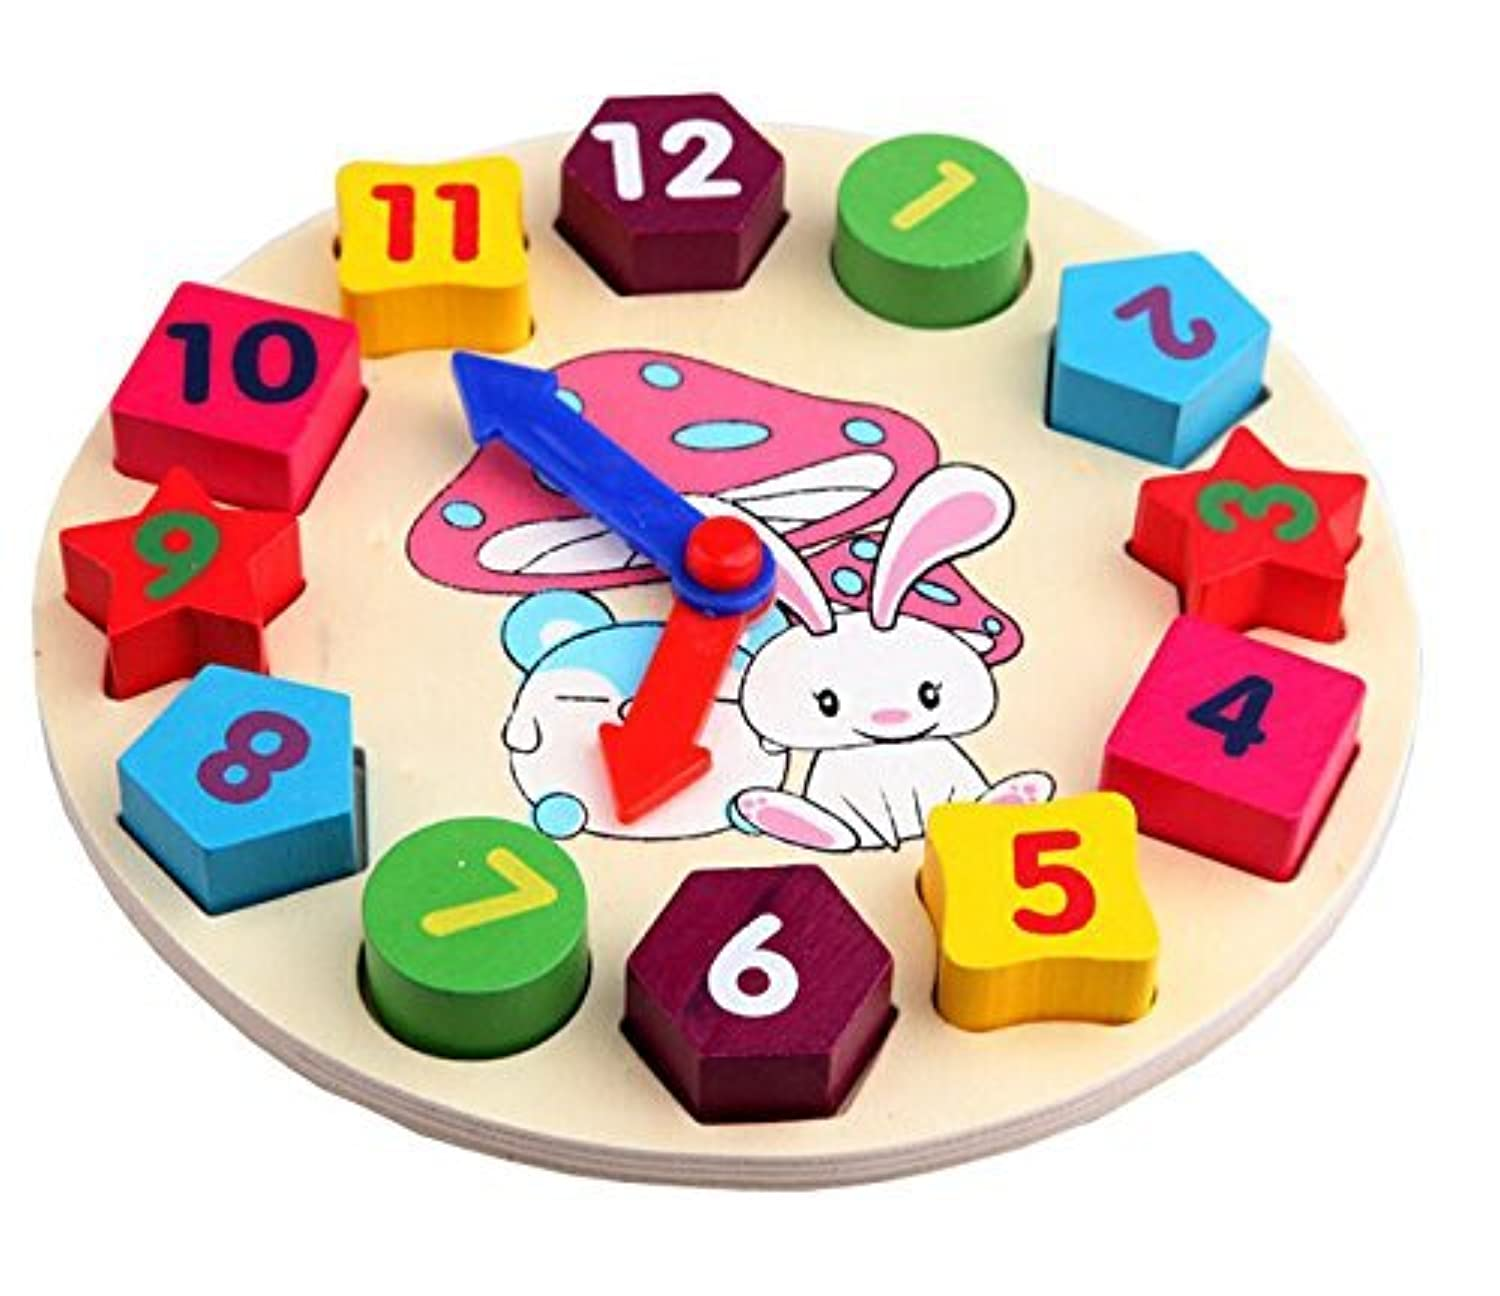 MAGIKON Cartoon Rabbit Number And Shape Matching Clock Toy,Teaching Clock Puzzle Toy for Children